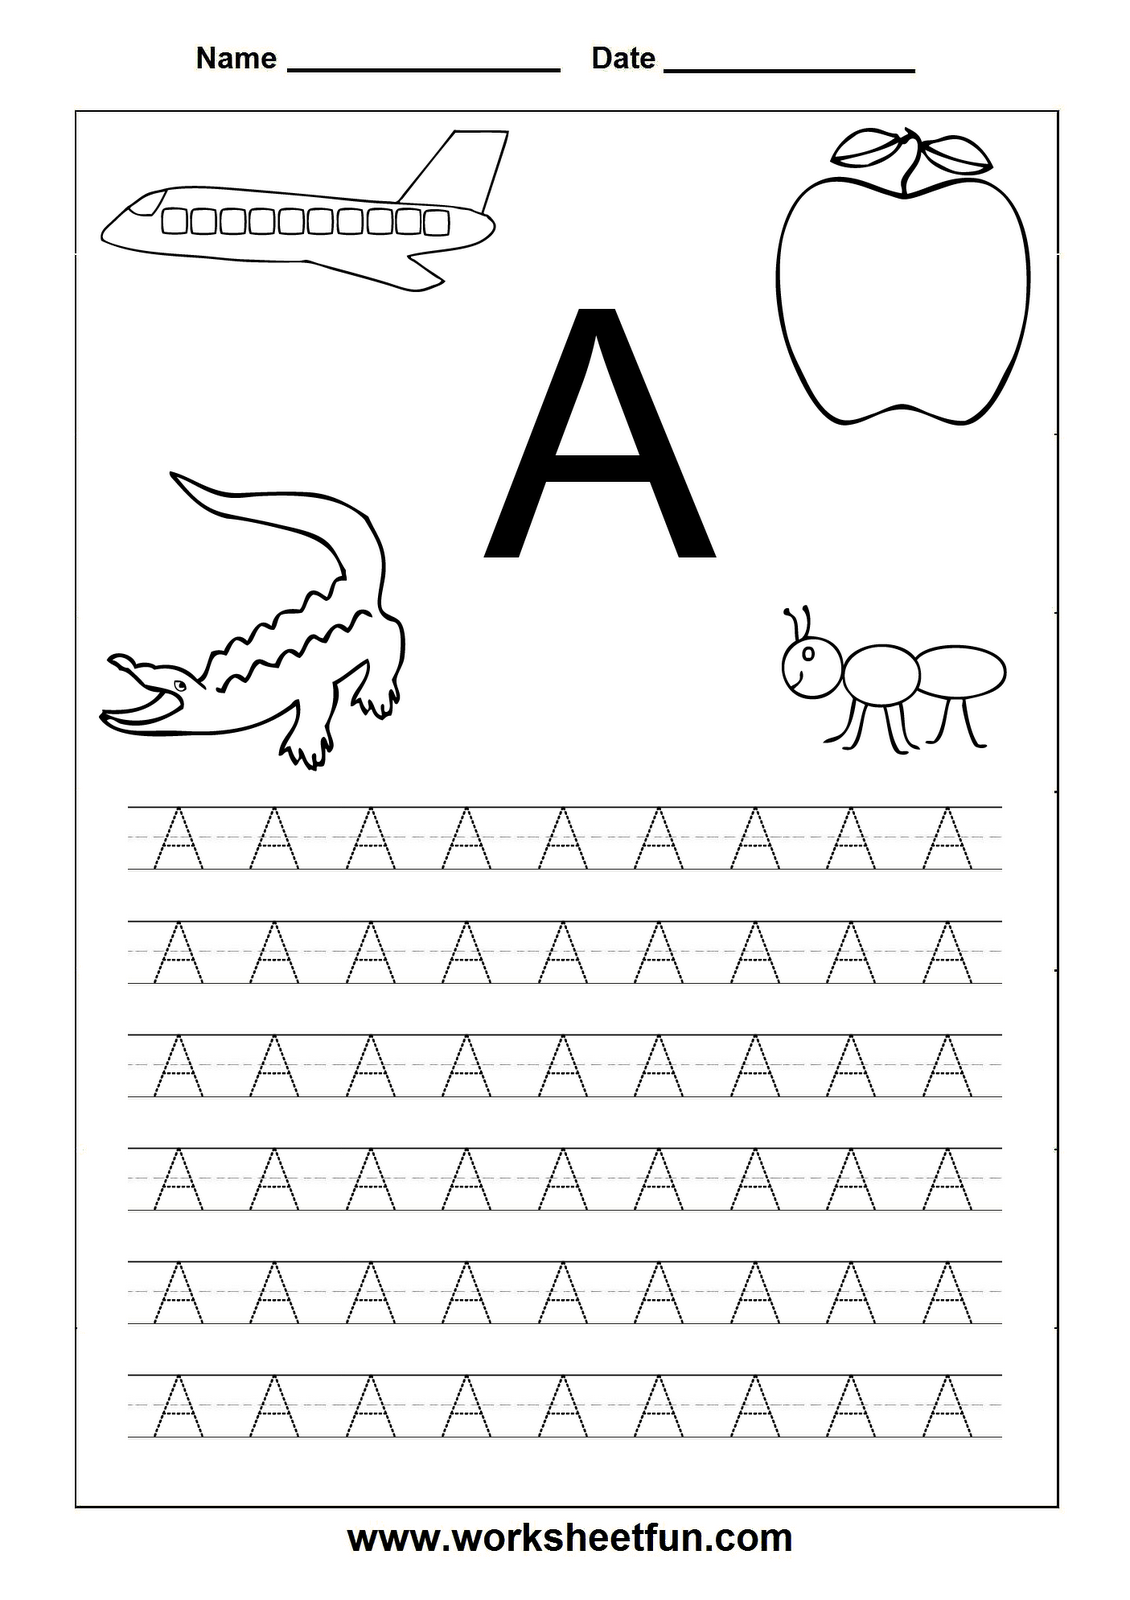 worksheet Pre K Letter Worksheets free printable alphabet handwriting worksheetscrystal hoffman letter tracing and more worksheets for preschoolers